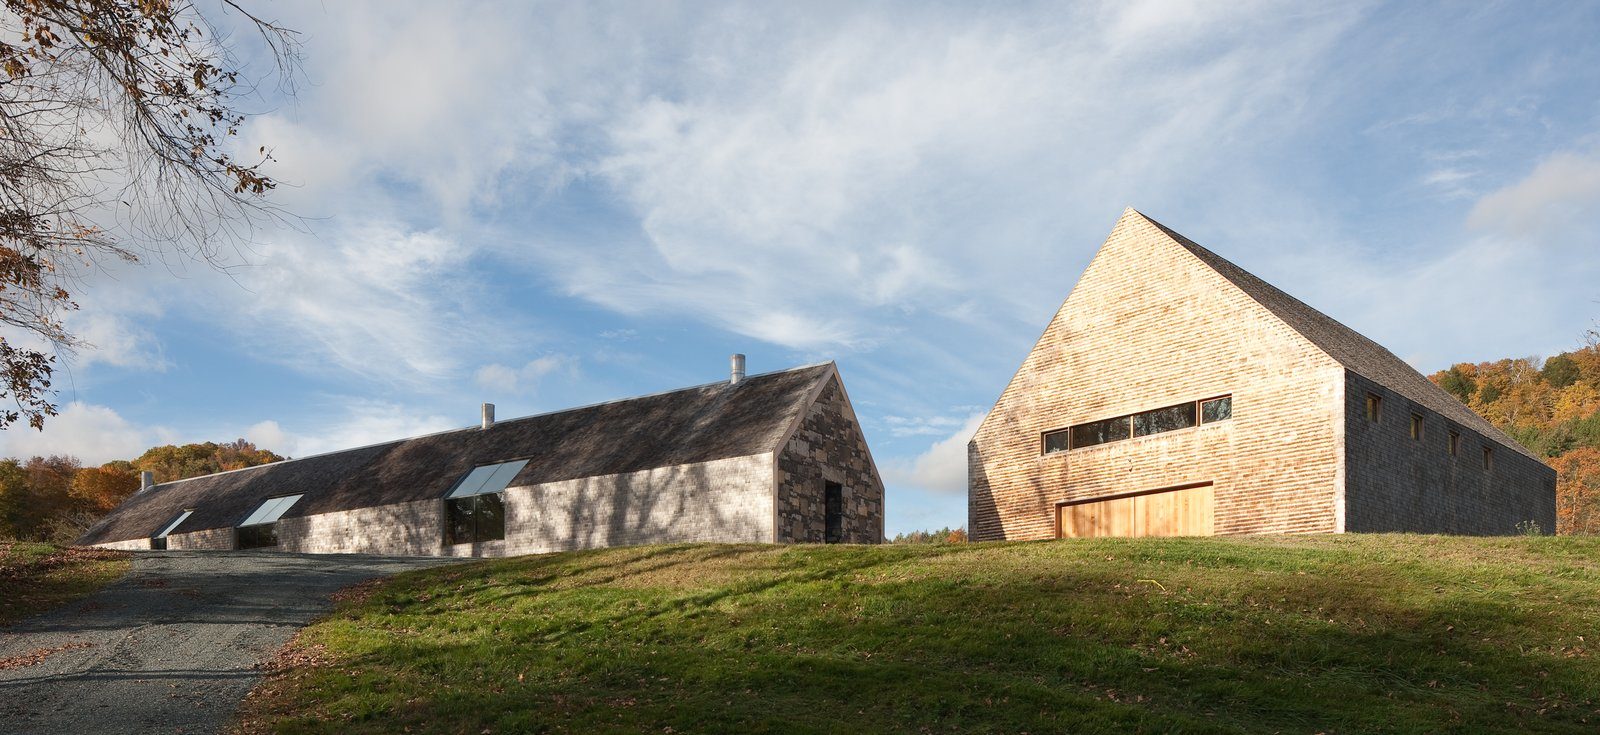 Exterior, Farmhouse, Gable, Wood, Shingles, Barn, Stone, and House The northern façade of the main house is set at an angle to the barn  Best Exterior House Barn Photos from A Minimalist, Rick Joy–Designed Farmhouse in Vermont Asks $9.25M